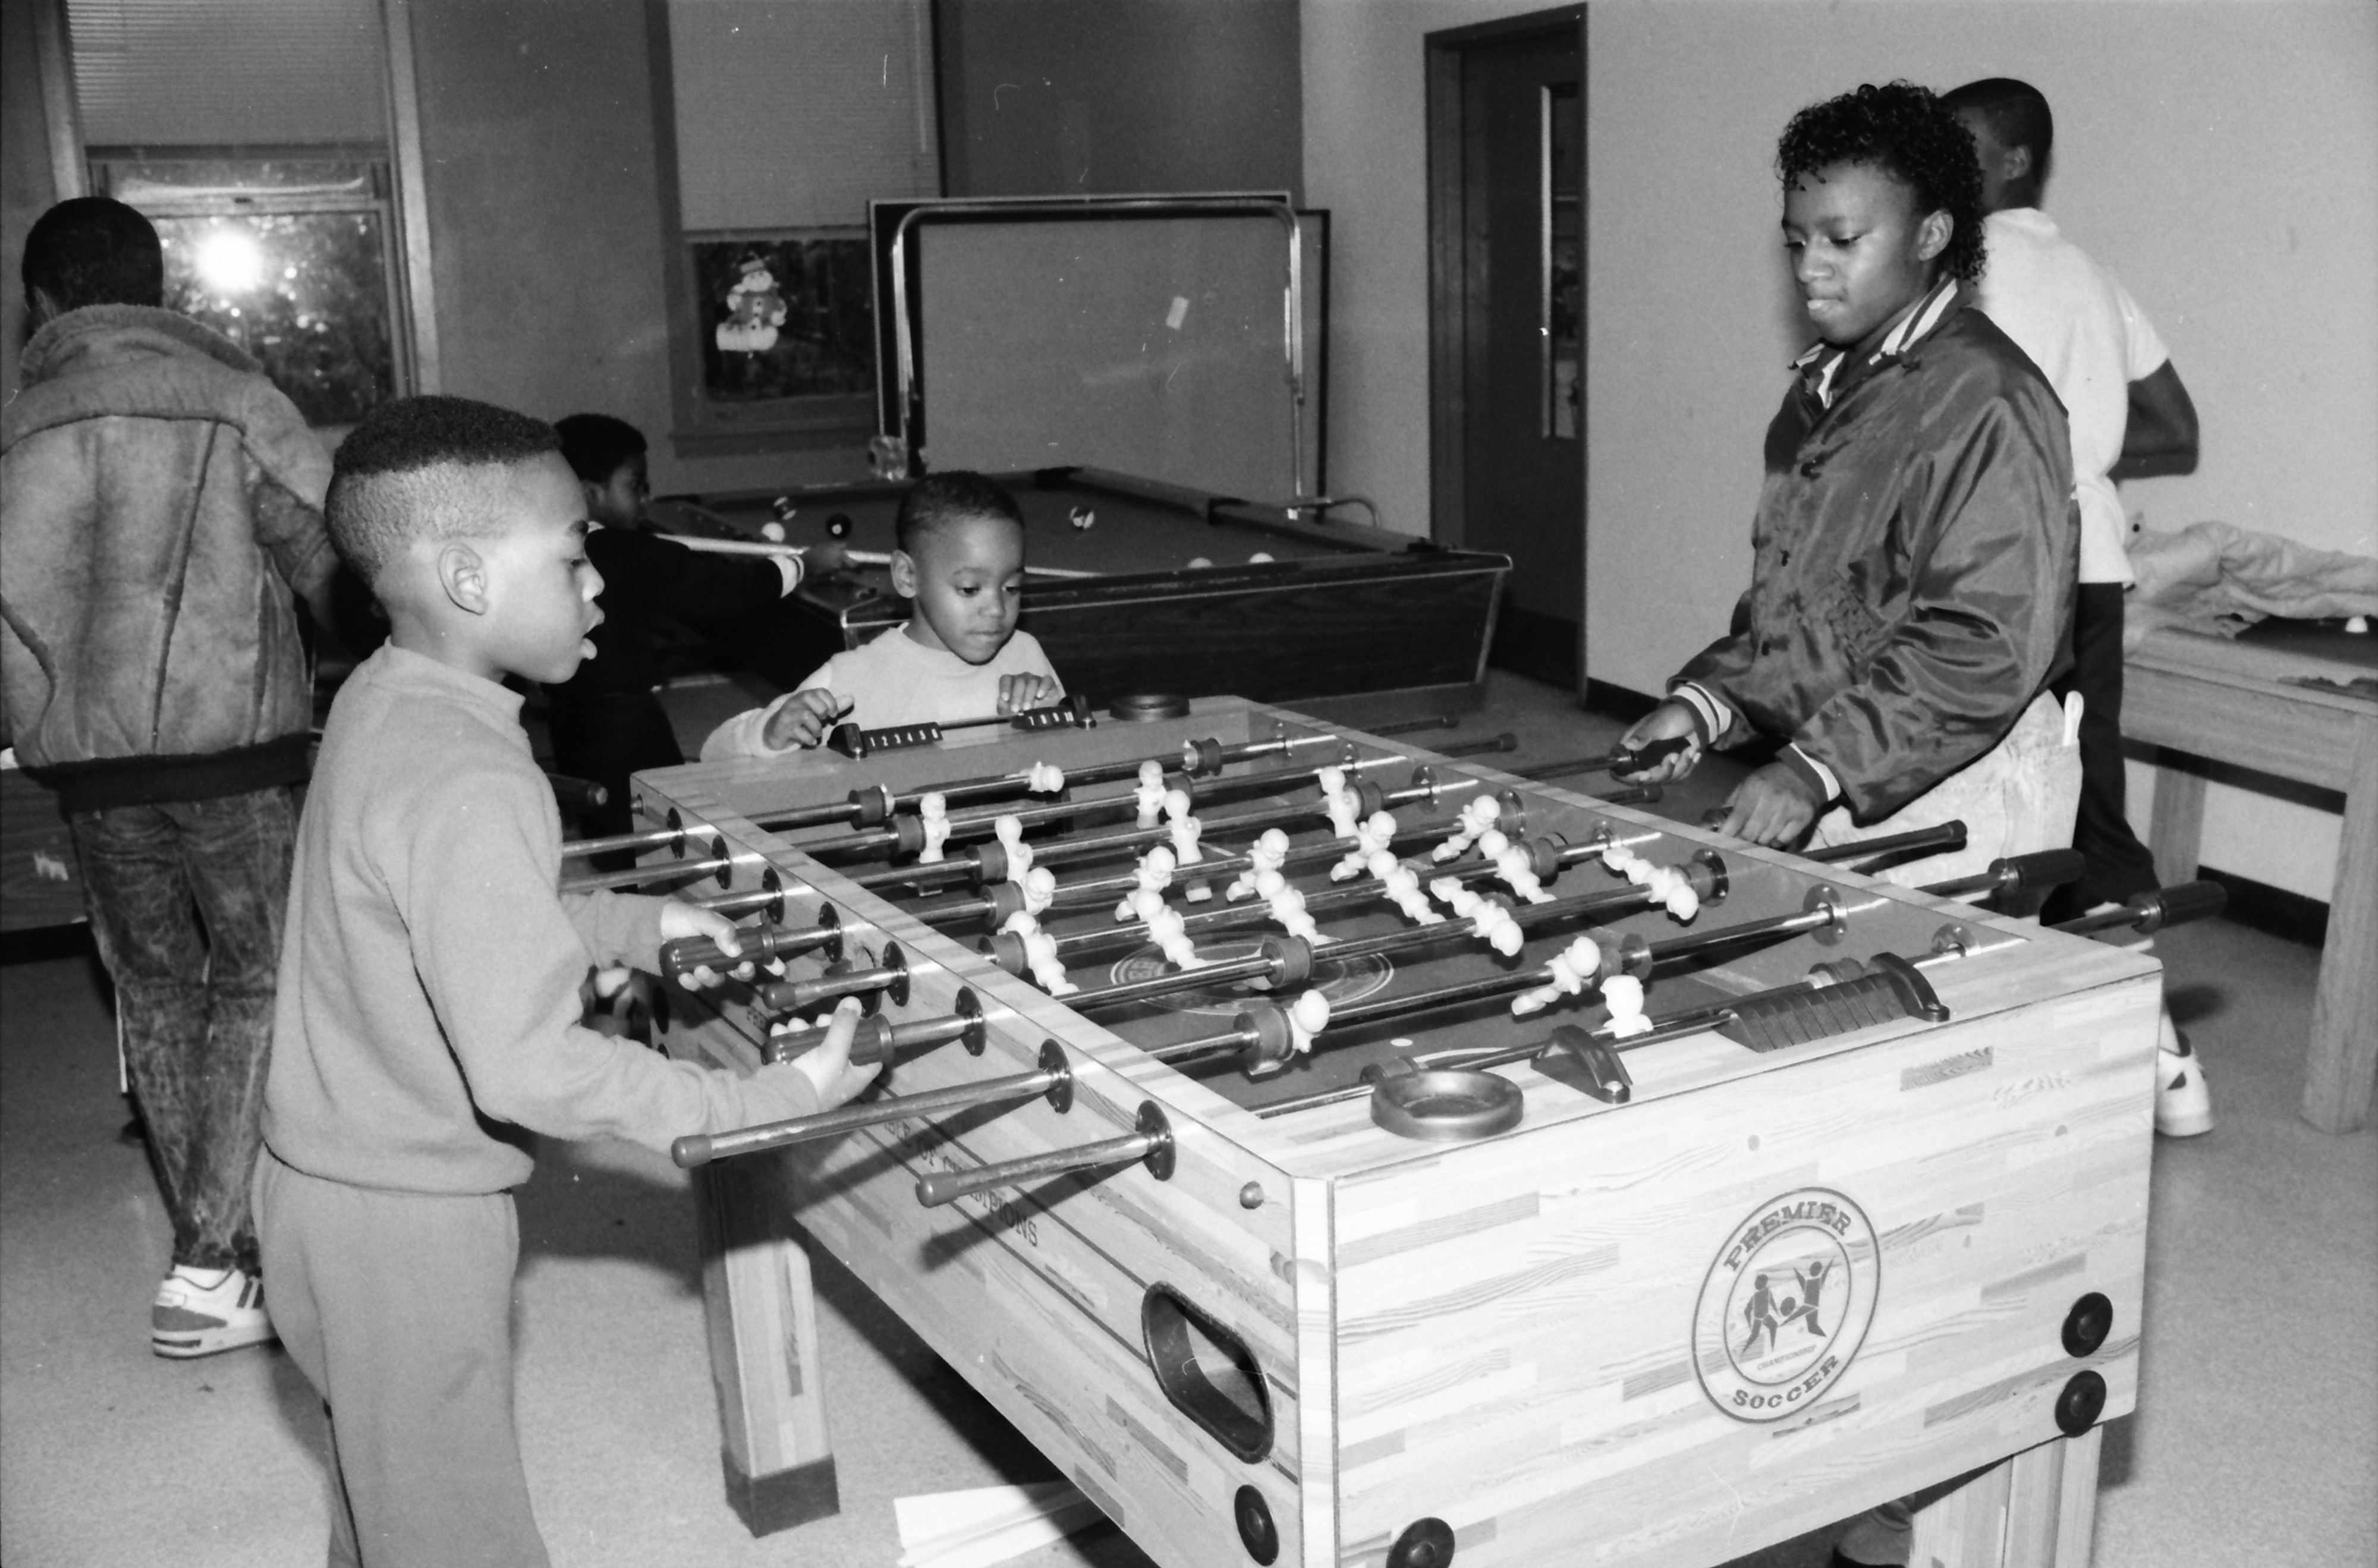 Children Playing Foosball at Parkridge Community Center, December 1988 image